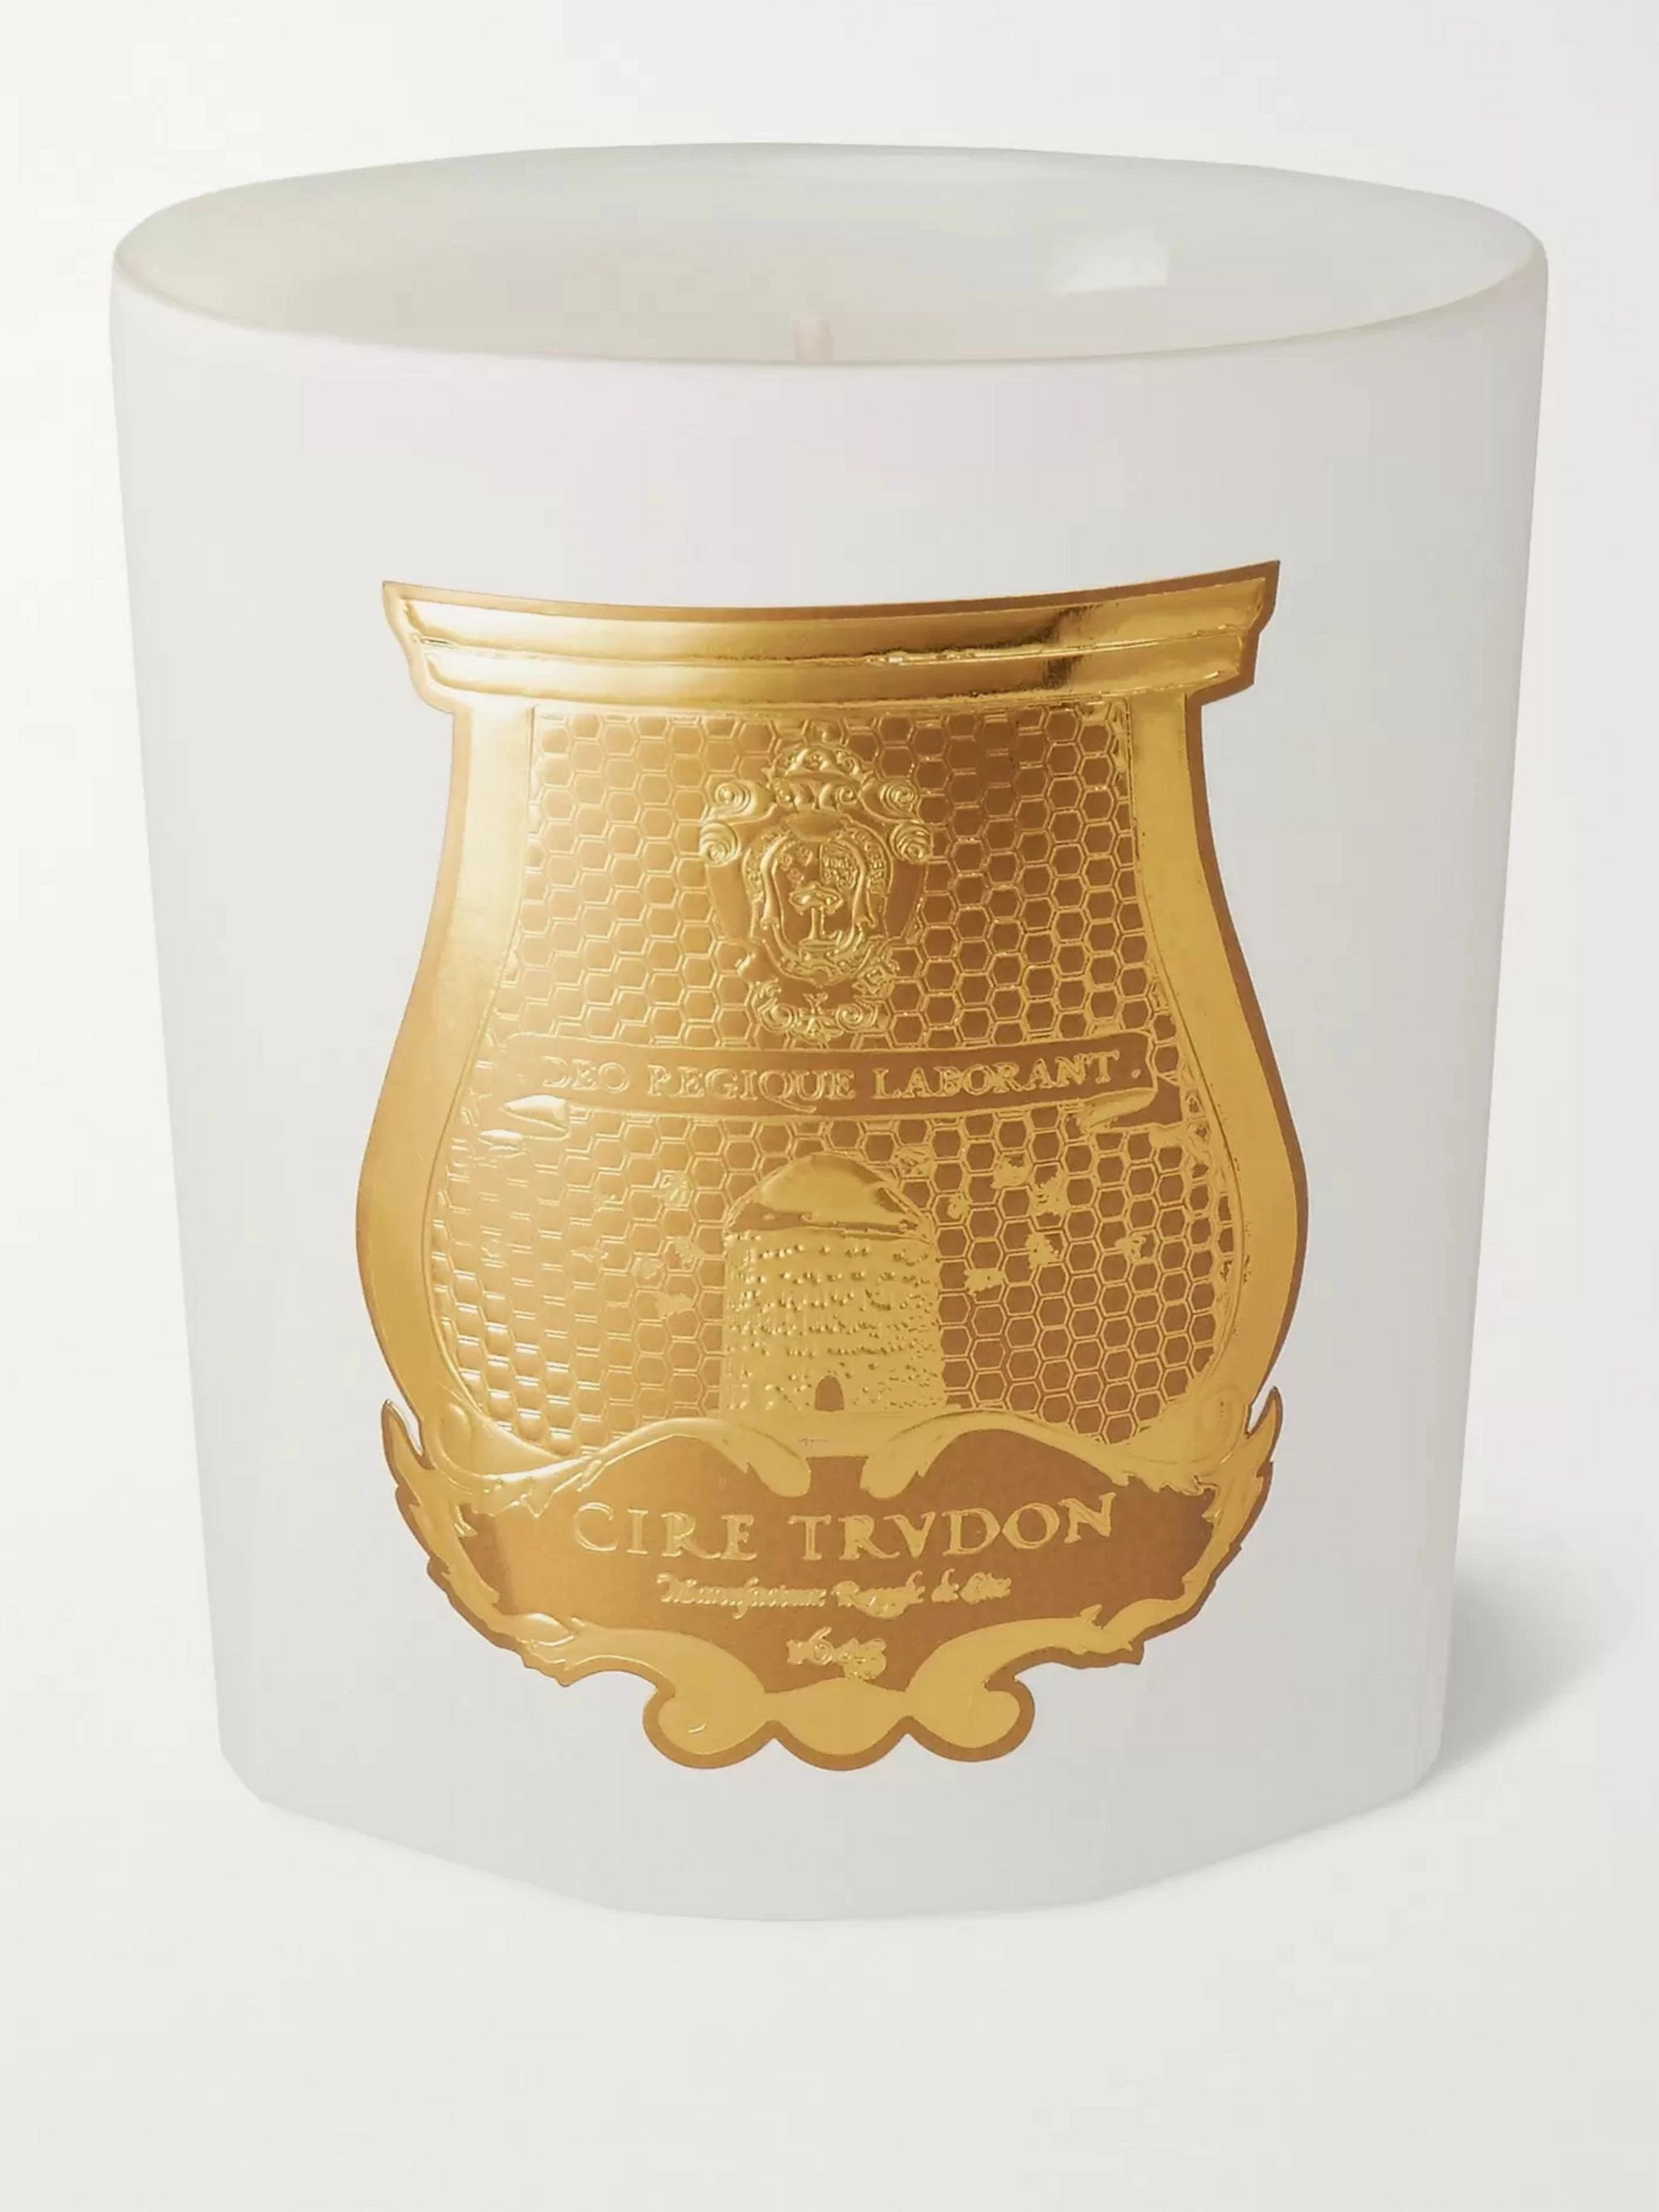 CIRE TRUDON SIX Scented Candle, 270g